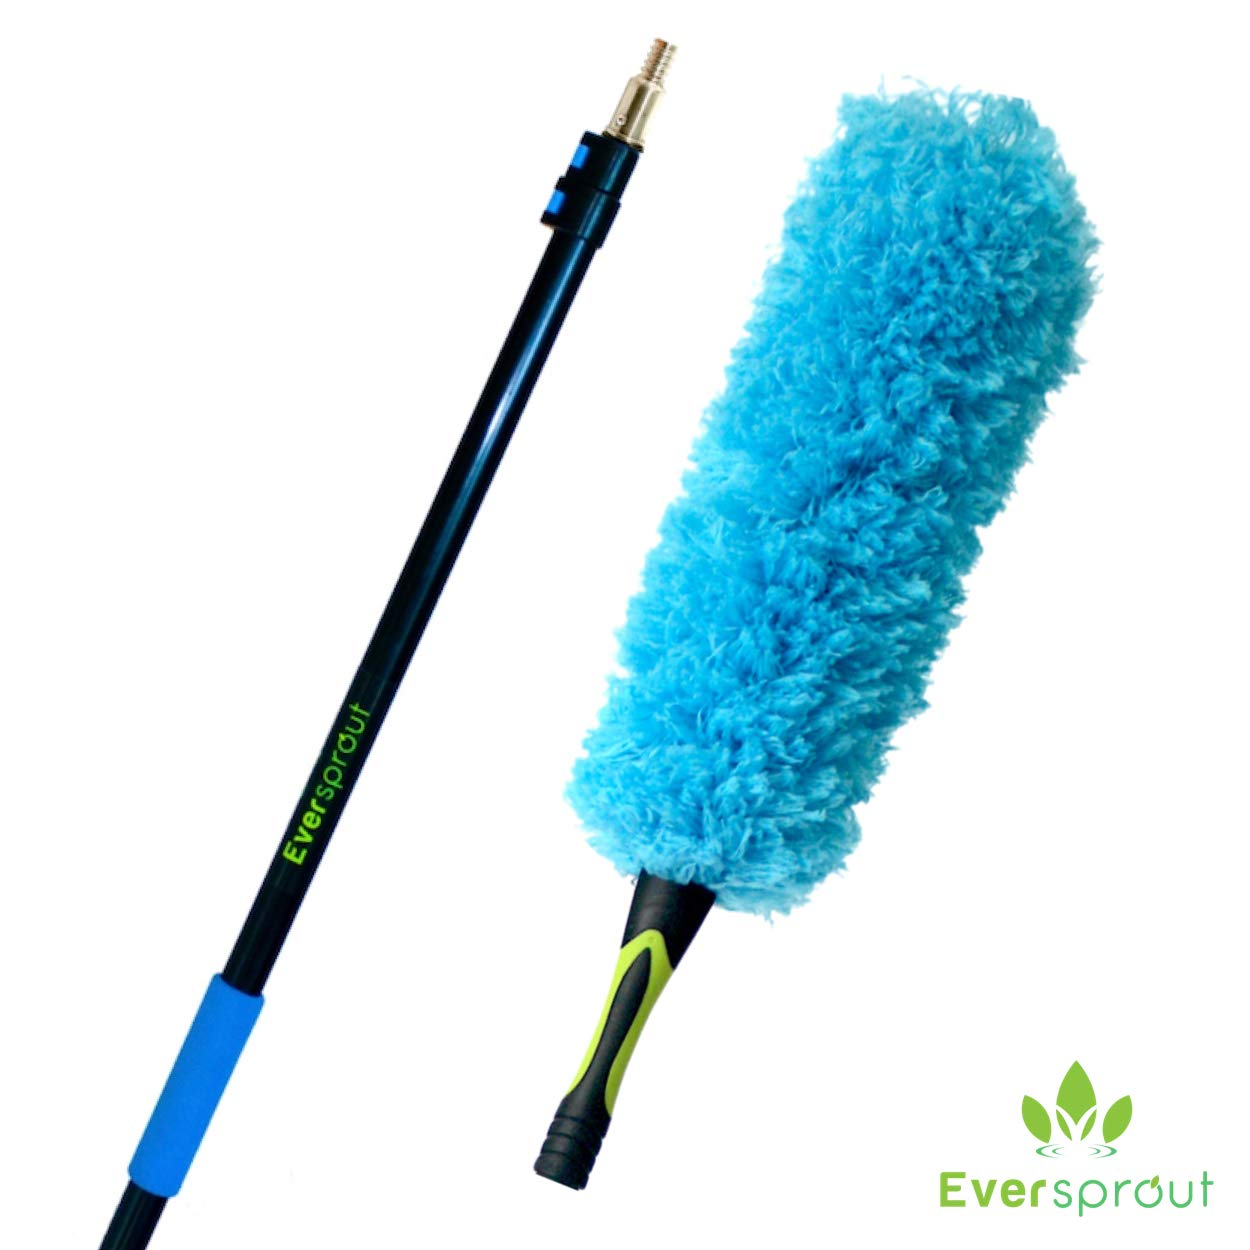 EVERSPROUT 8-to-20 Foot Flexible Microfiber Feather Duster and Extension Pole Combo (25 Foot Reach) | Lightweight, High-Grade Aluminum, 3-Stage Telescopic Pole | Extra Long 24-inch Feather Duster by EVERSPROUT